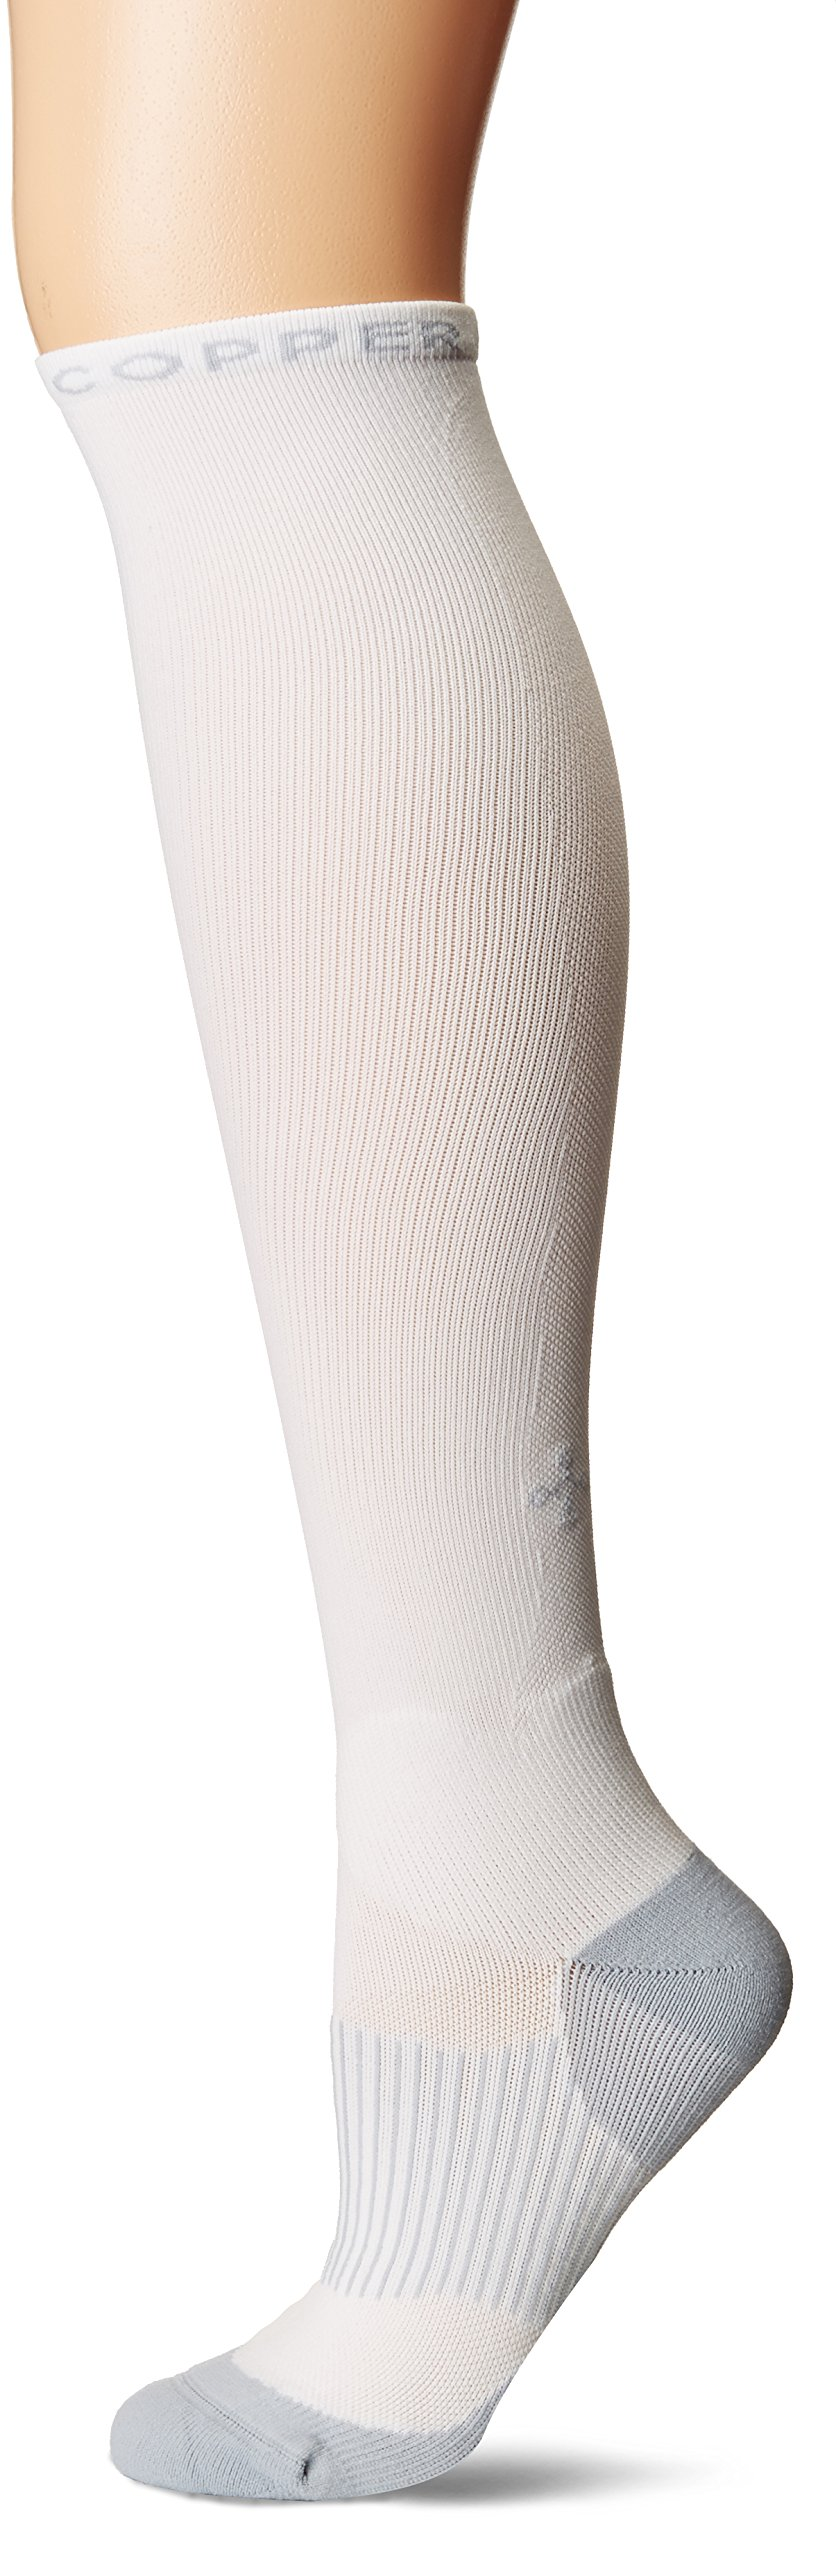 Tommie Copper Women's Performance Compression Over The Calf Socks, White w/Grey, 4-6.5 by Tommie Copper